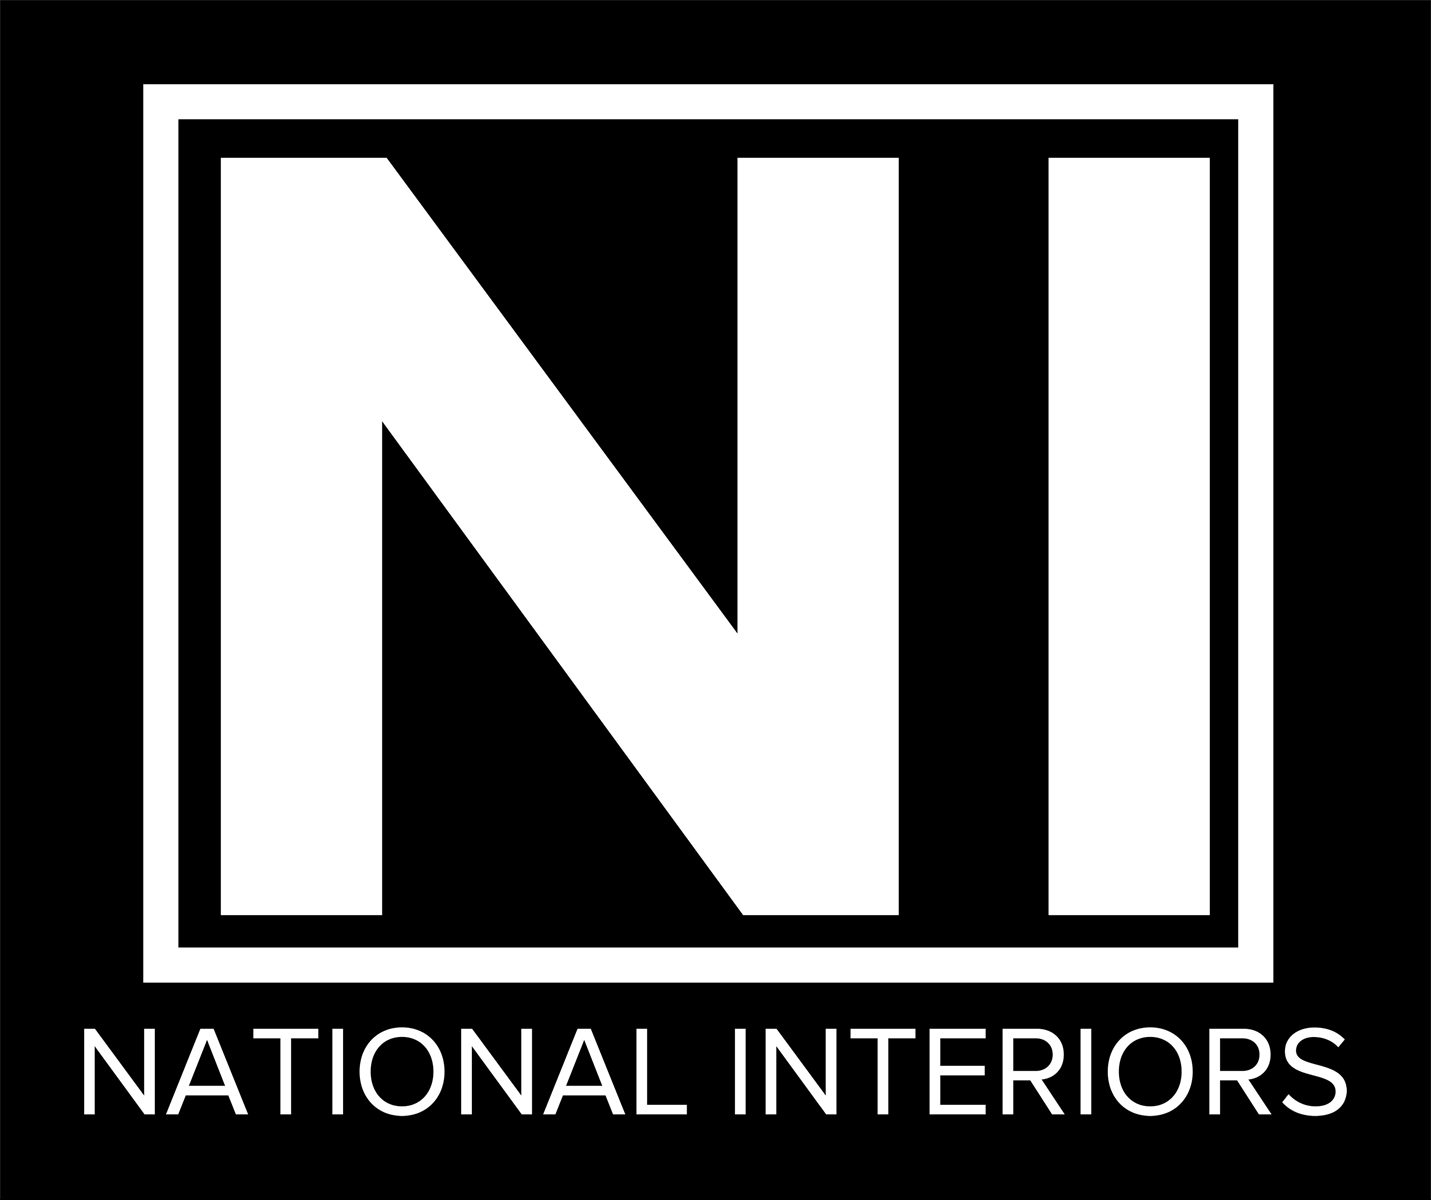 National Interiors in Winnipeg, MB